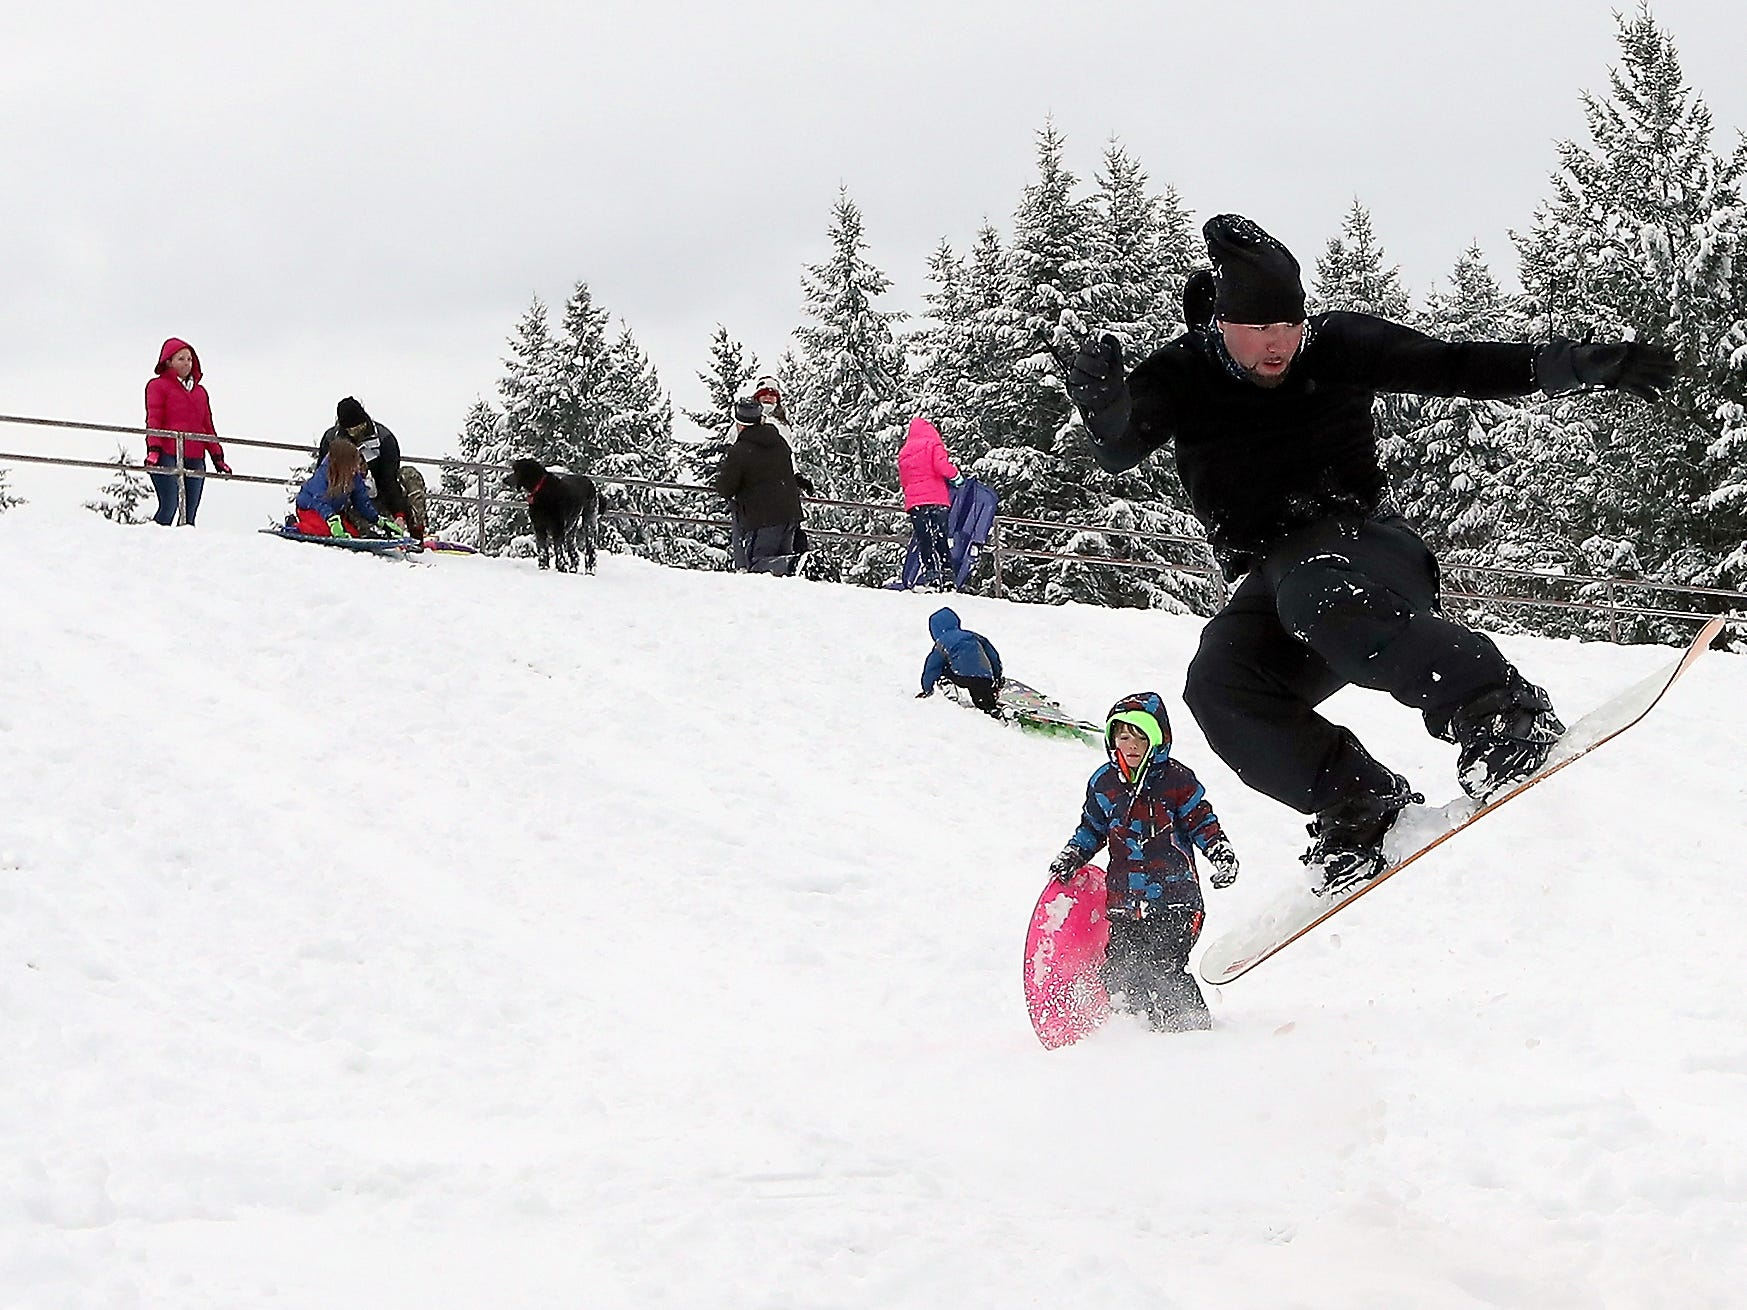 Josh Fairchild hits a jump while snowboarding down the hill at Silver Ridge Elementary School in Silverdale on Saturday.